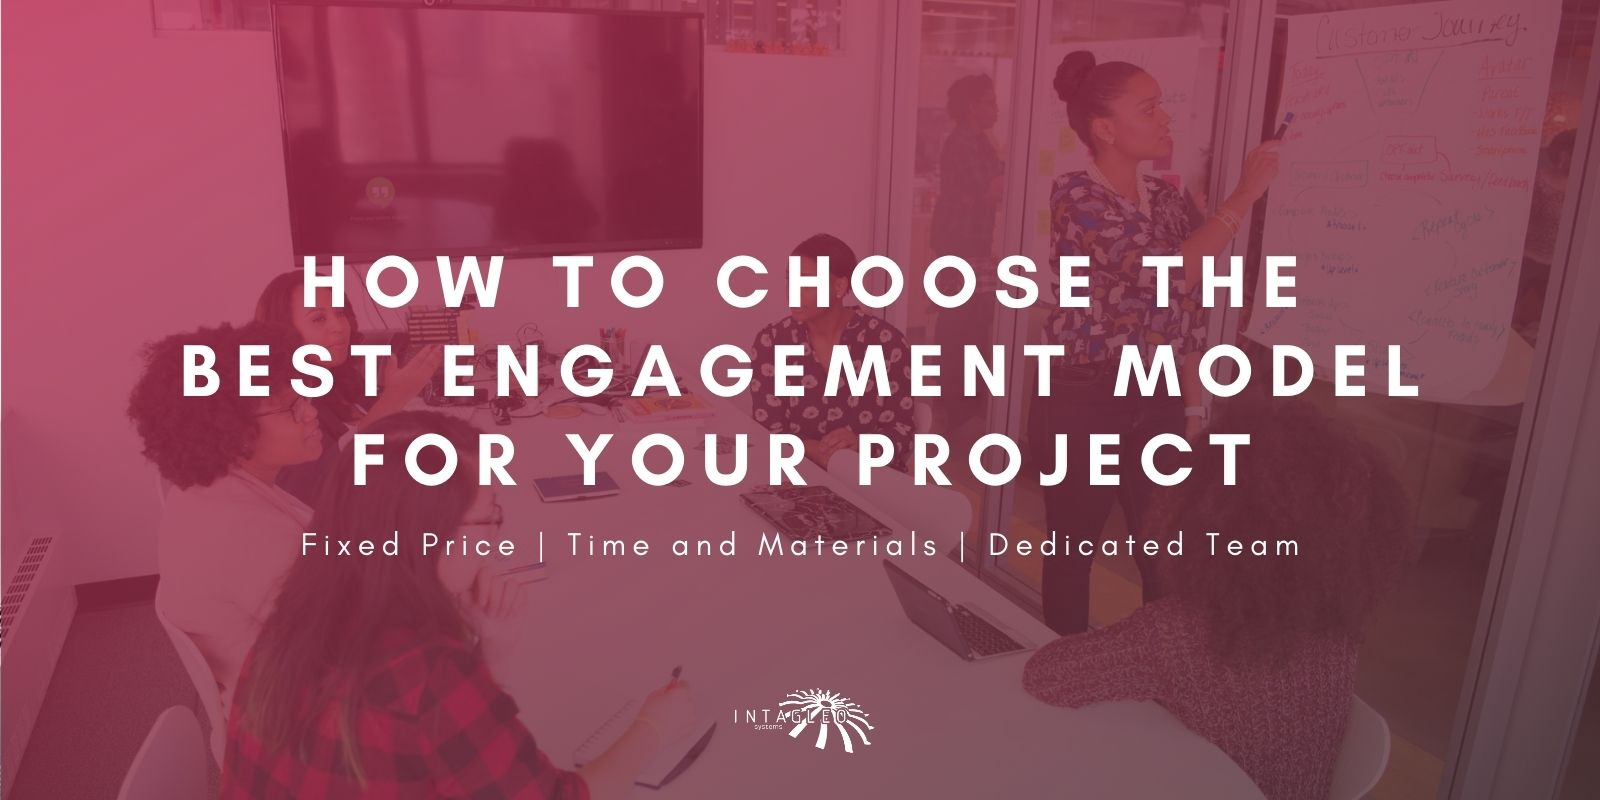 How to Choose the Best Engagement Model for Your Project (Fixed Price | Time and Materials | Dedicated Team)